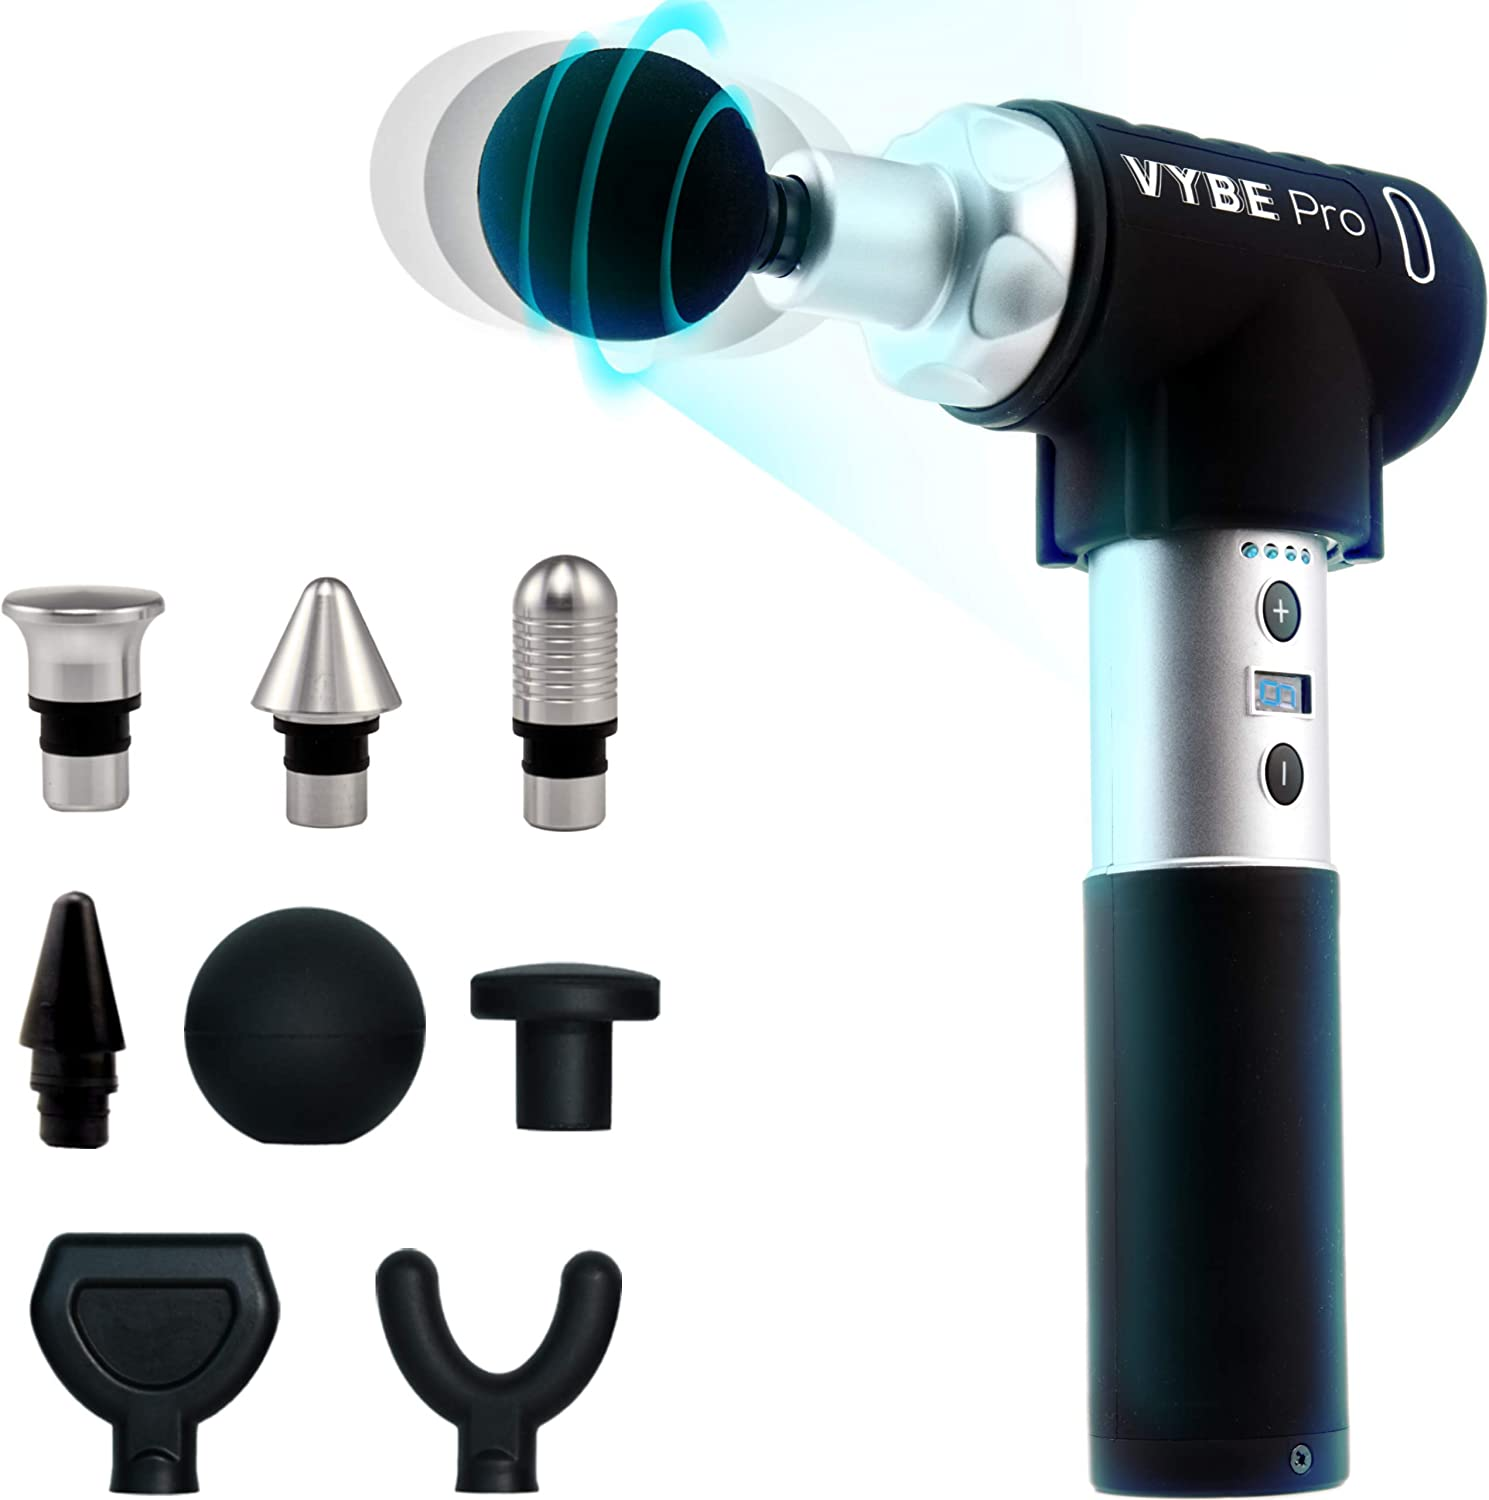 VYBE Percussion Massage Gun - Pro Model -Muscle Deep Tissue Massager -Quiet, Portable, Electric, Hand held, Body Relaxation: Health & Personal Care